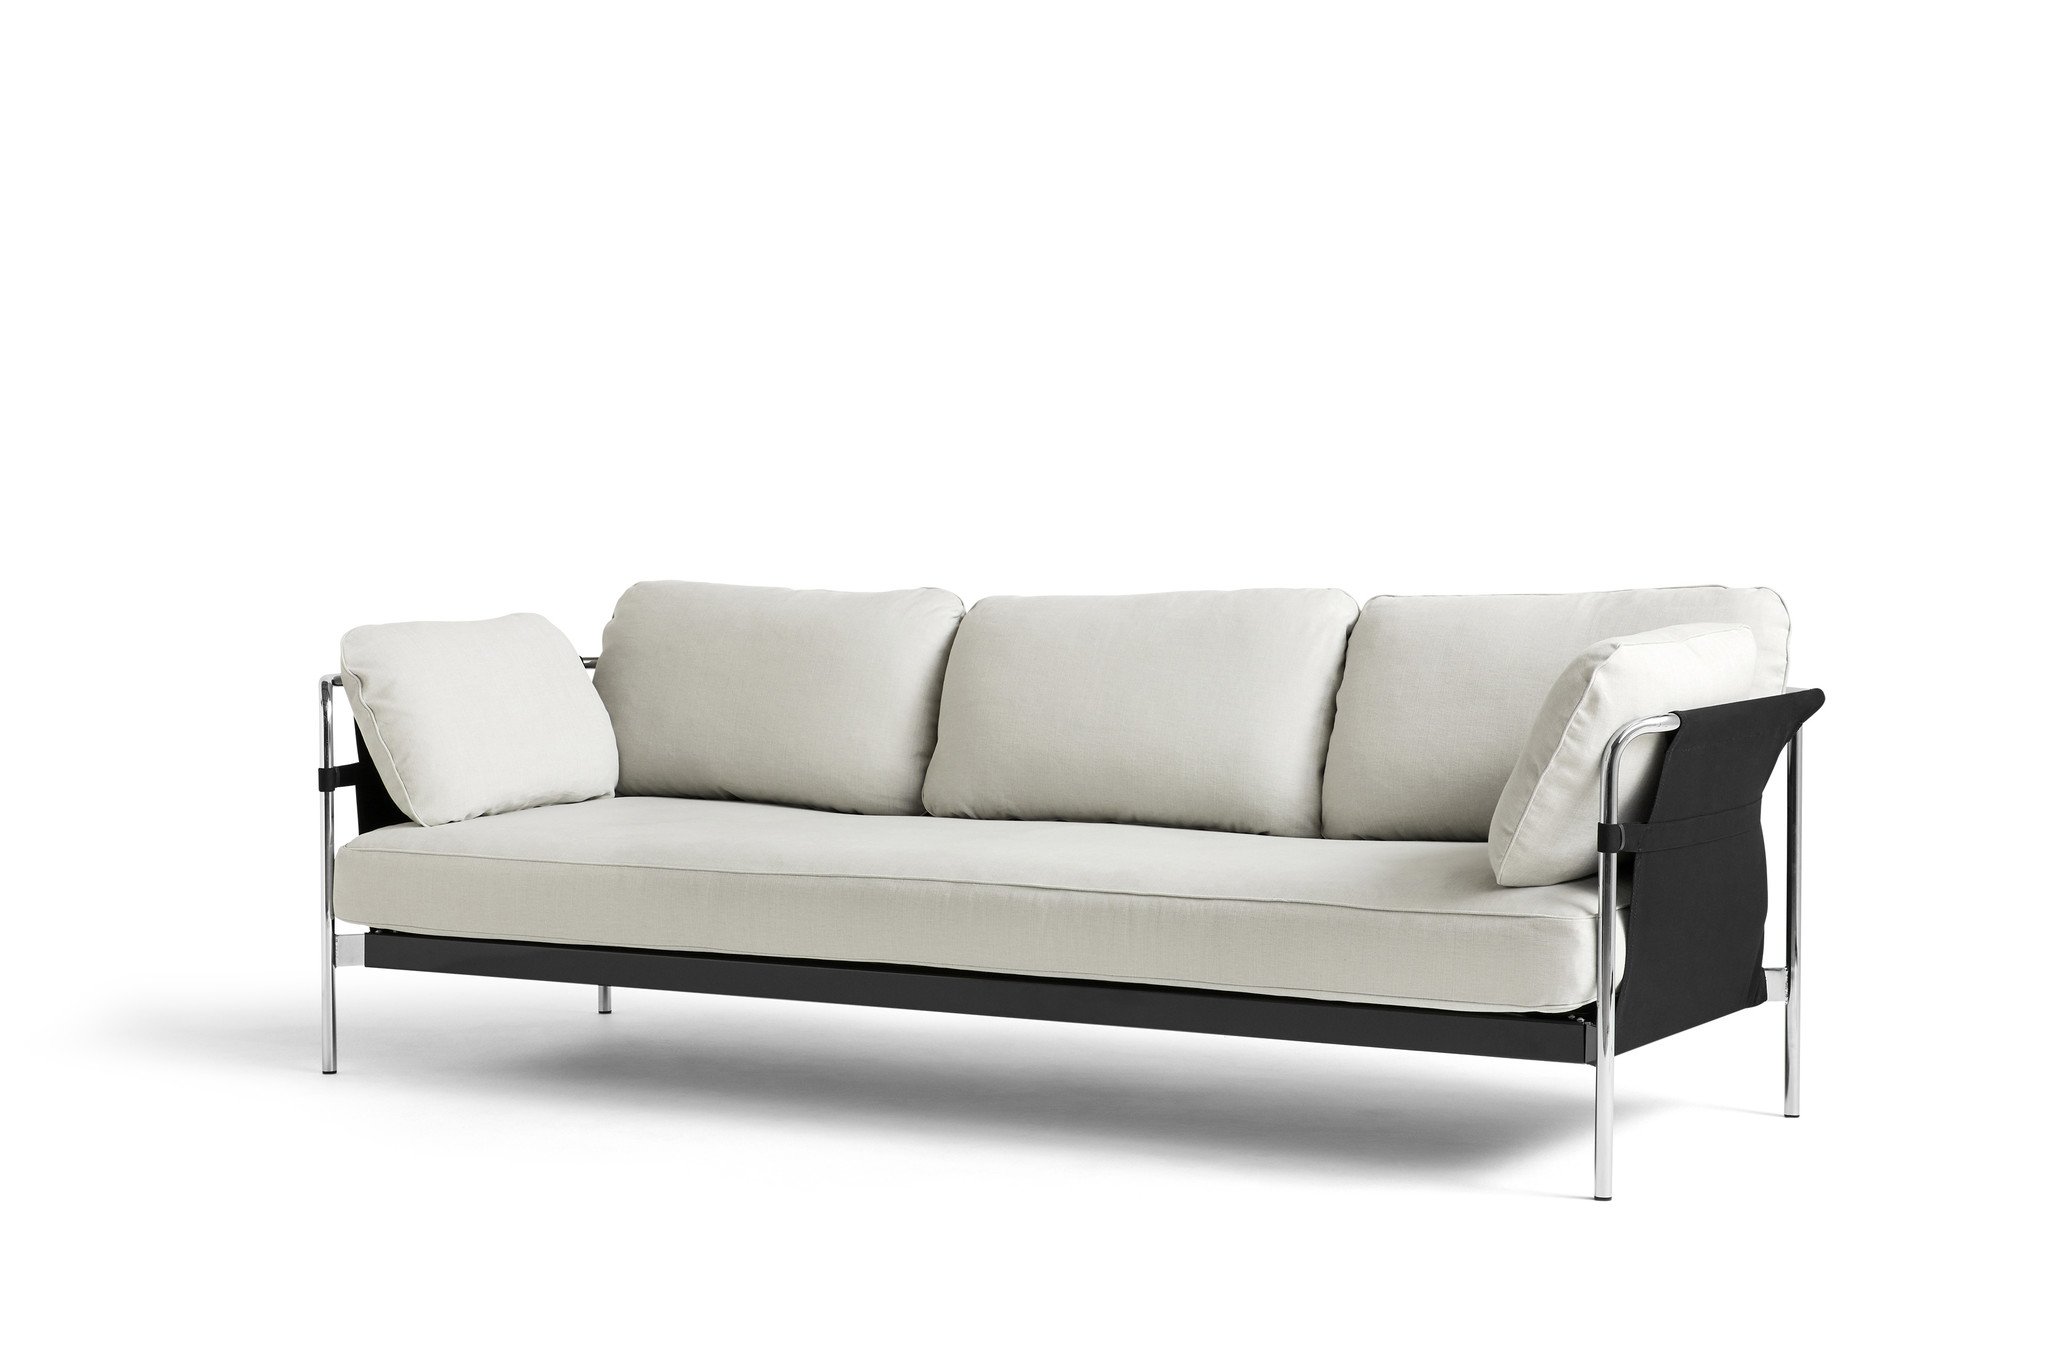 Can 3 Seater-1